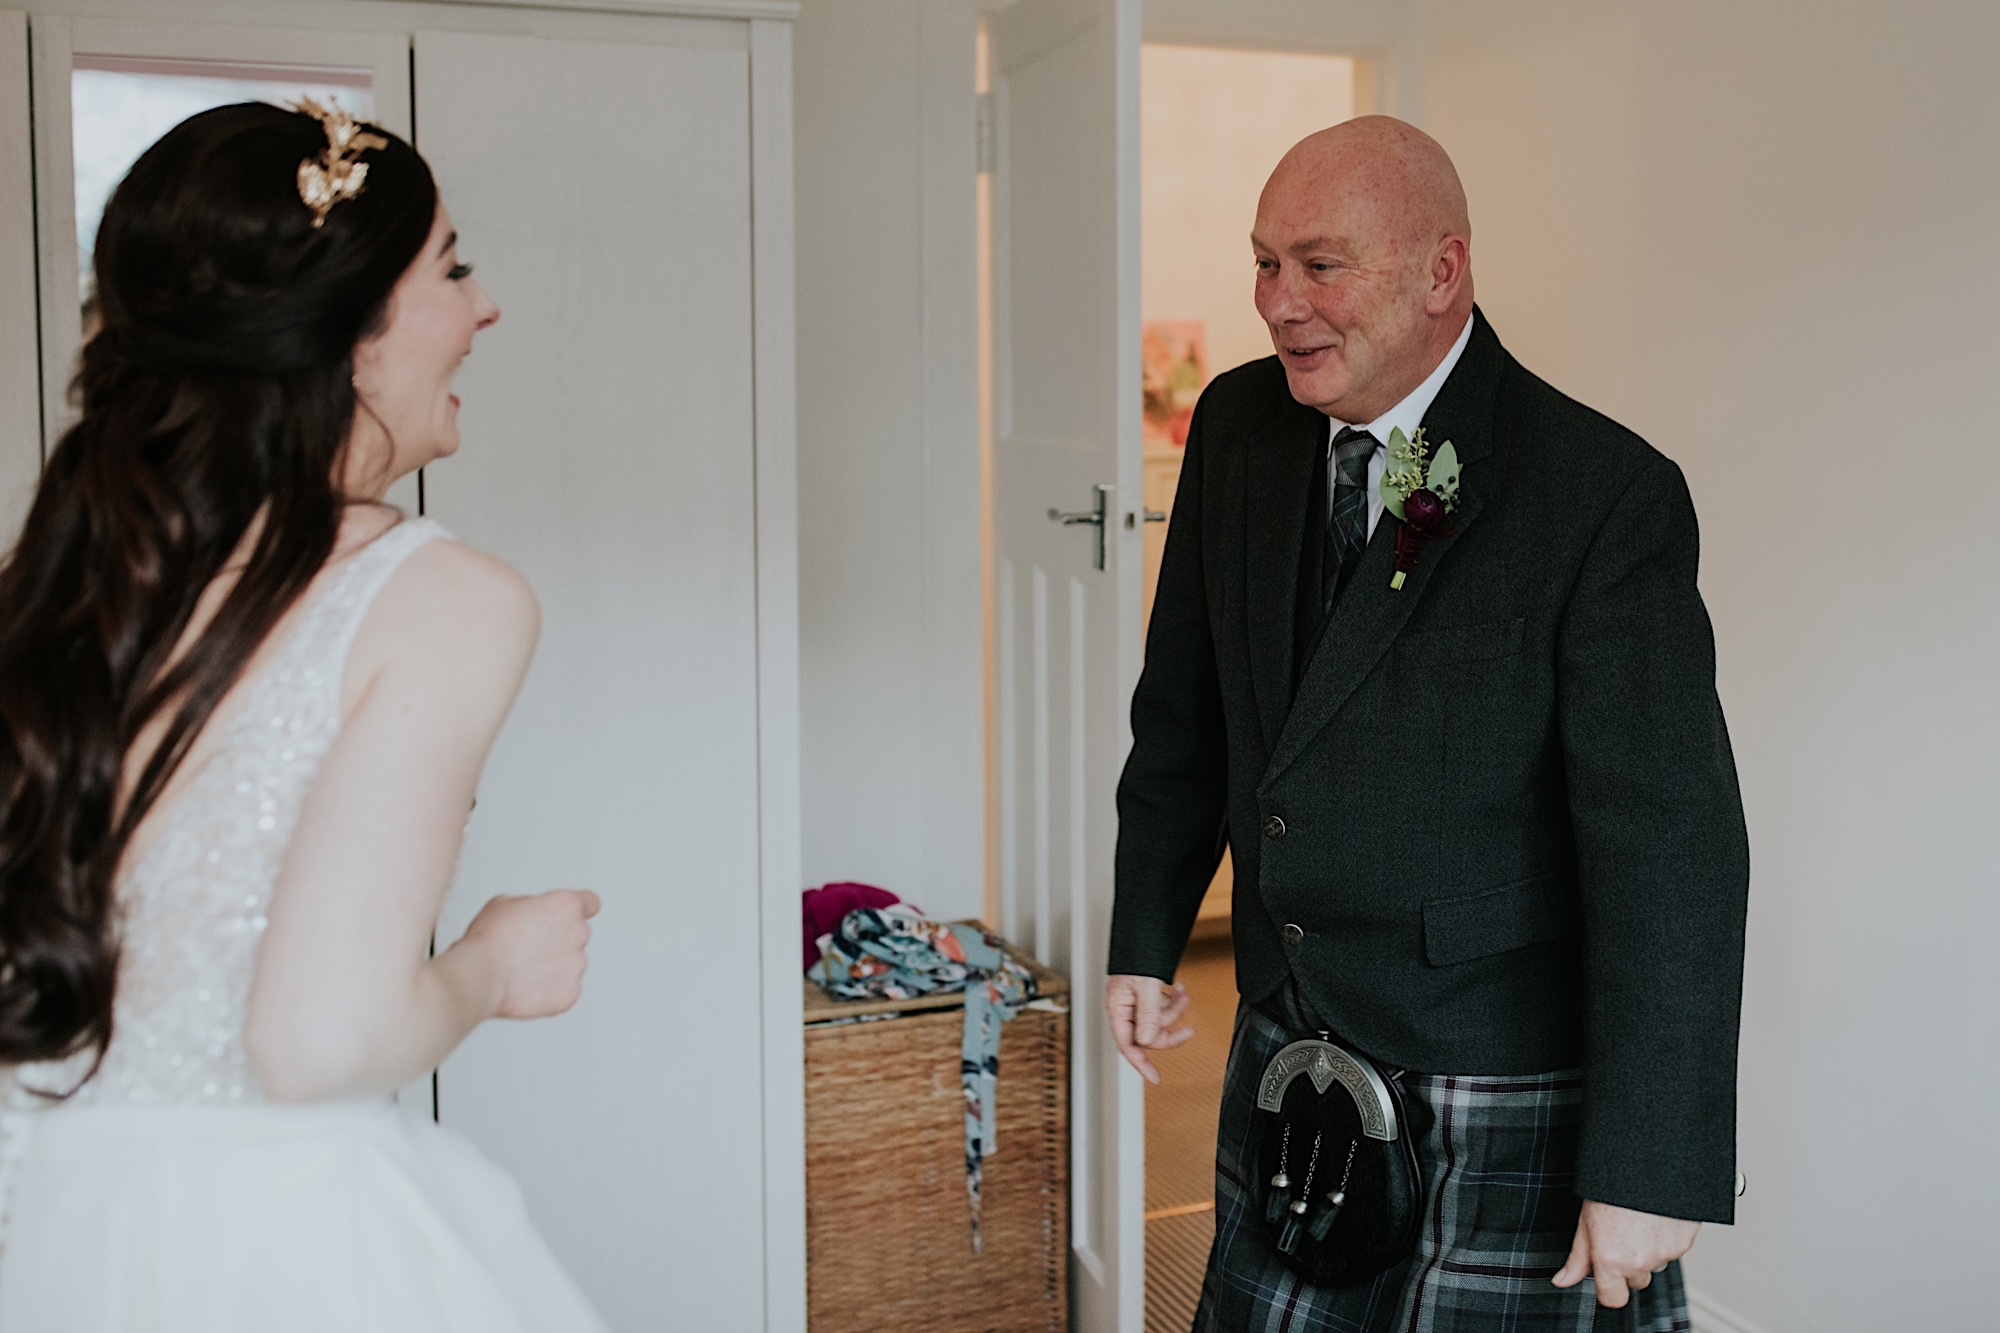 brides dad seeing her in her dress for the first time looking emotional